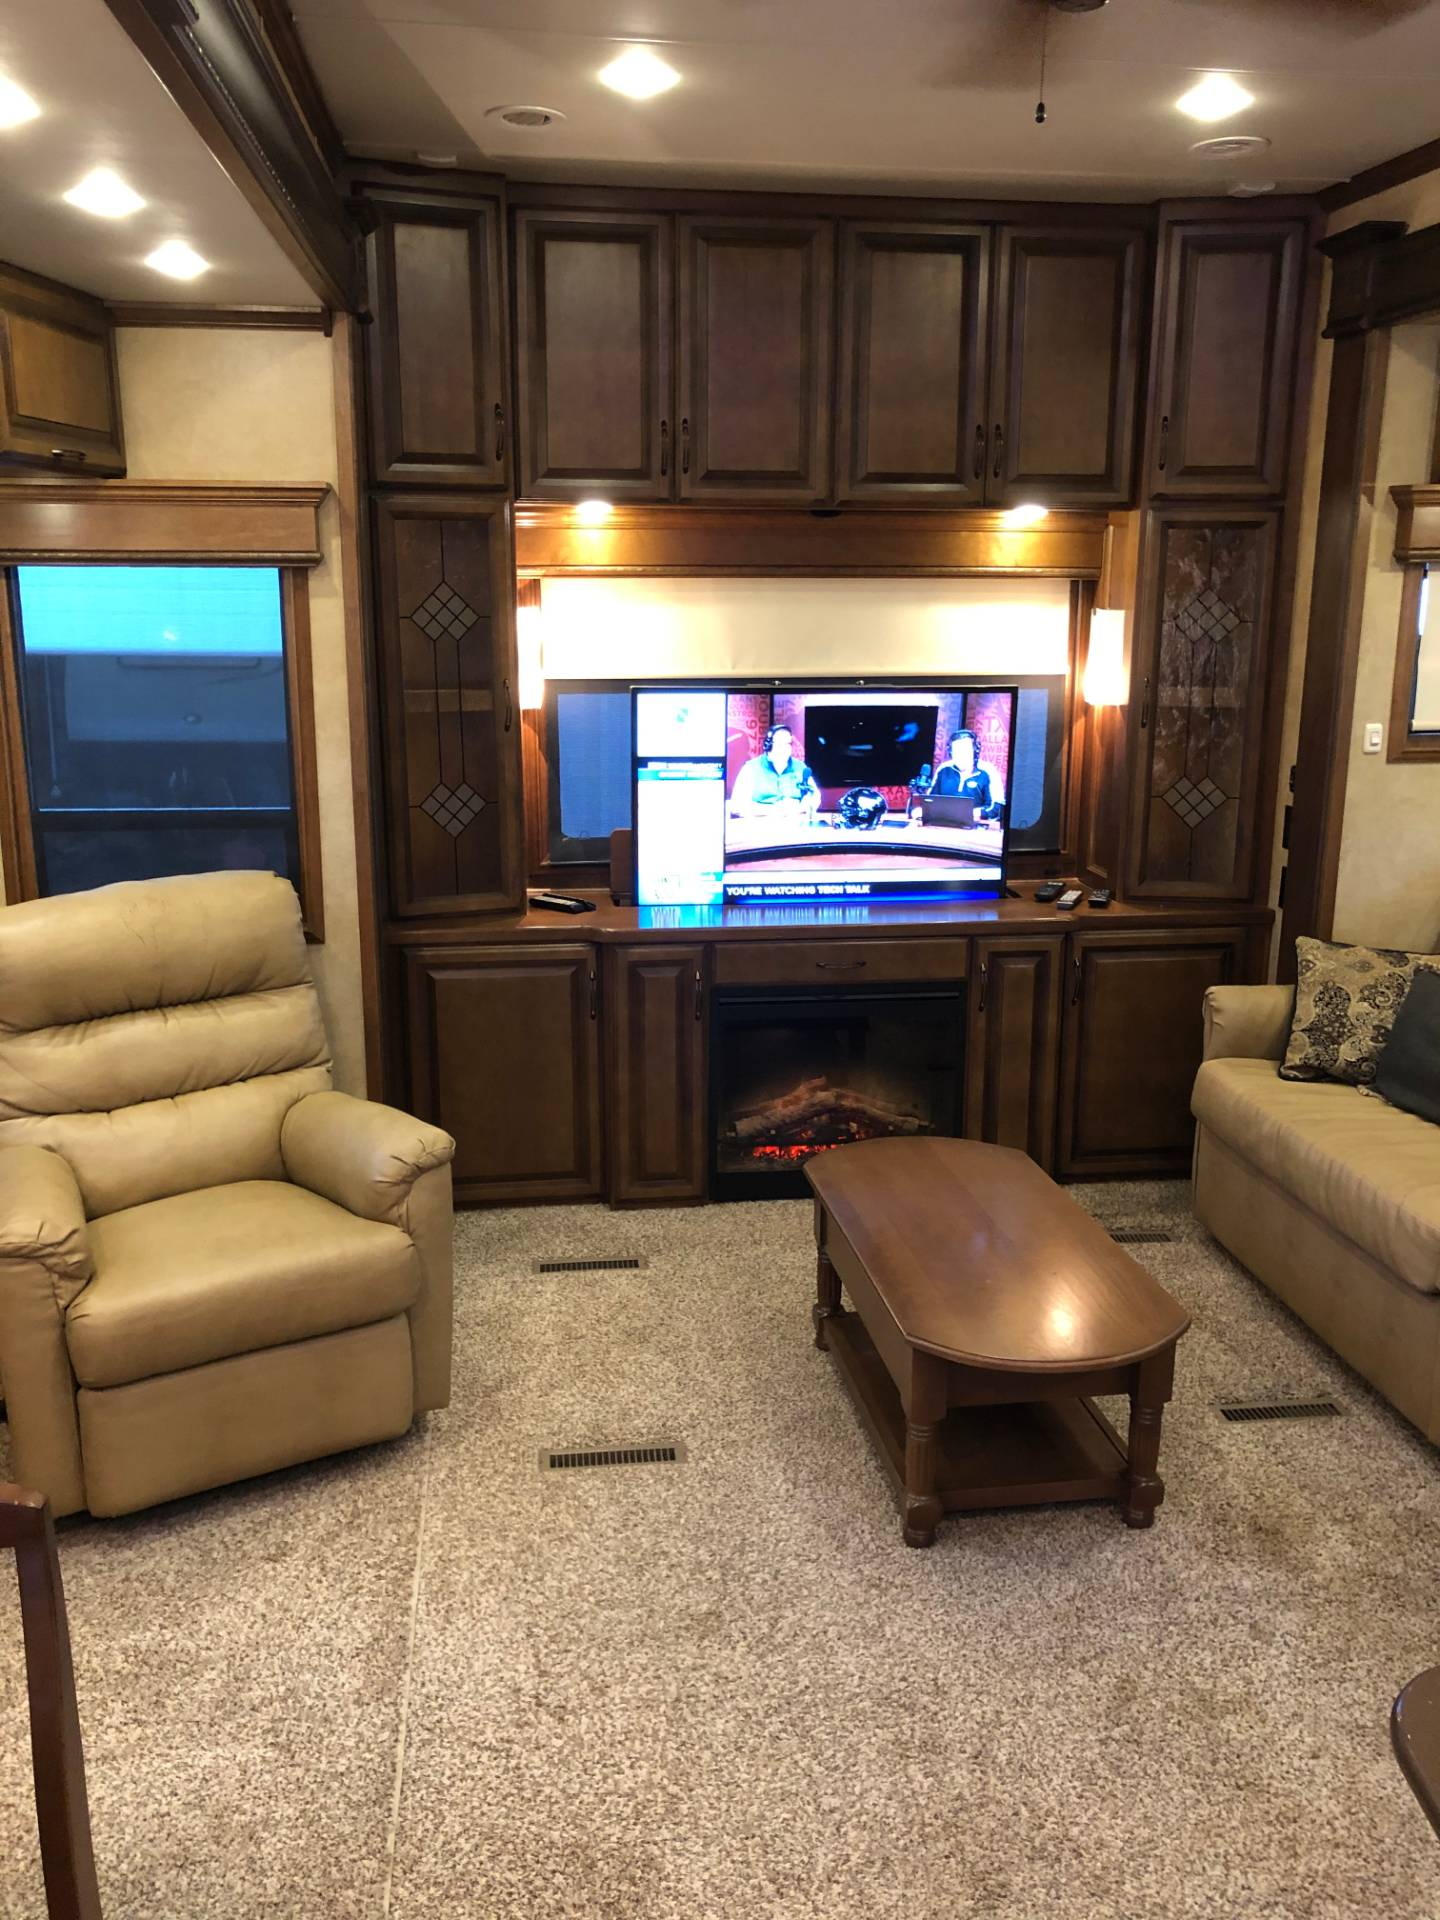 2014 DRV Mobile D Suites 39RESB3 in Wolfforth, Texas - Photo 16